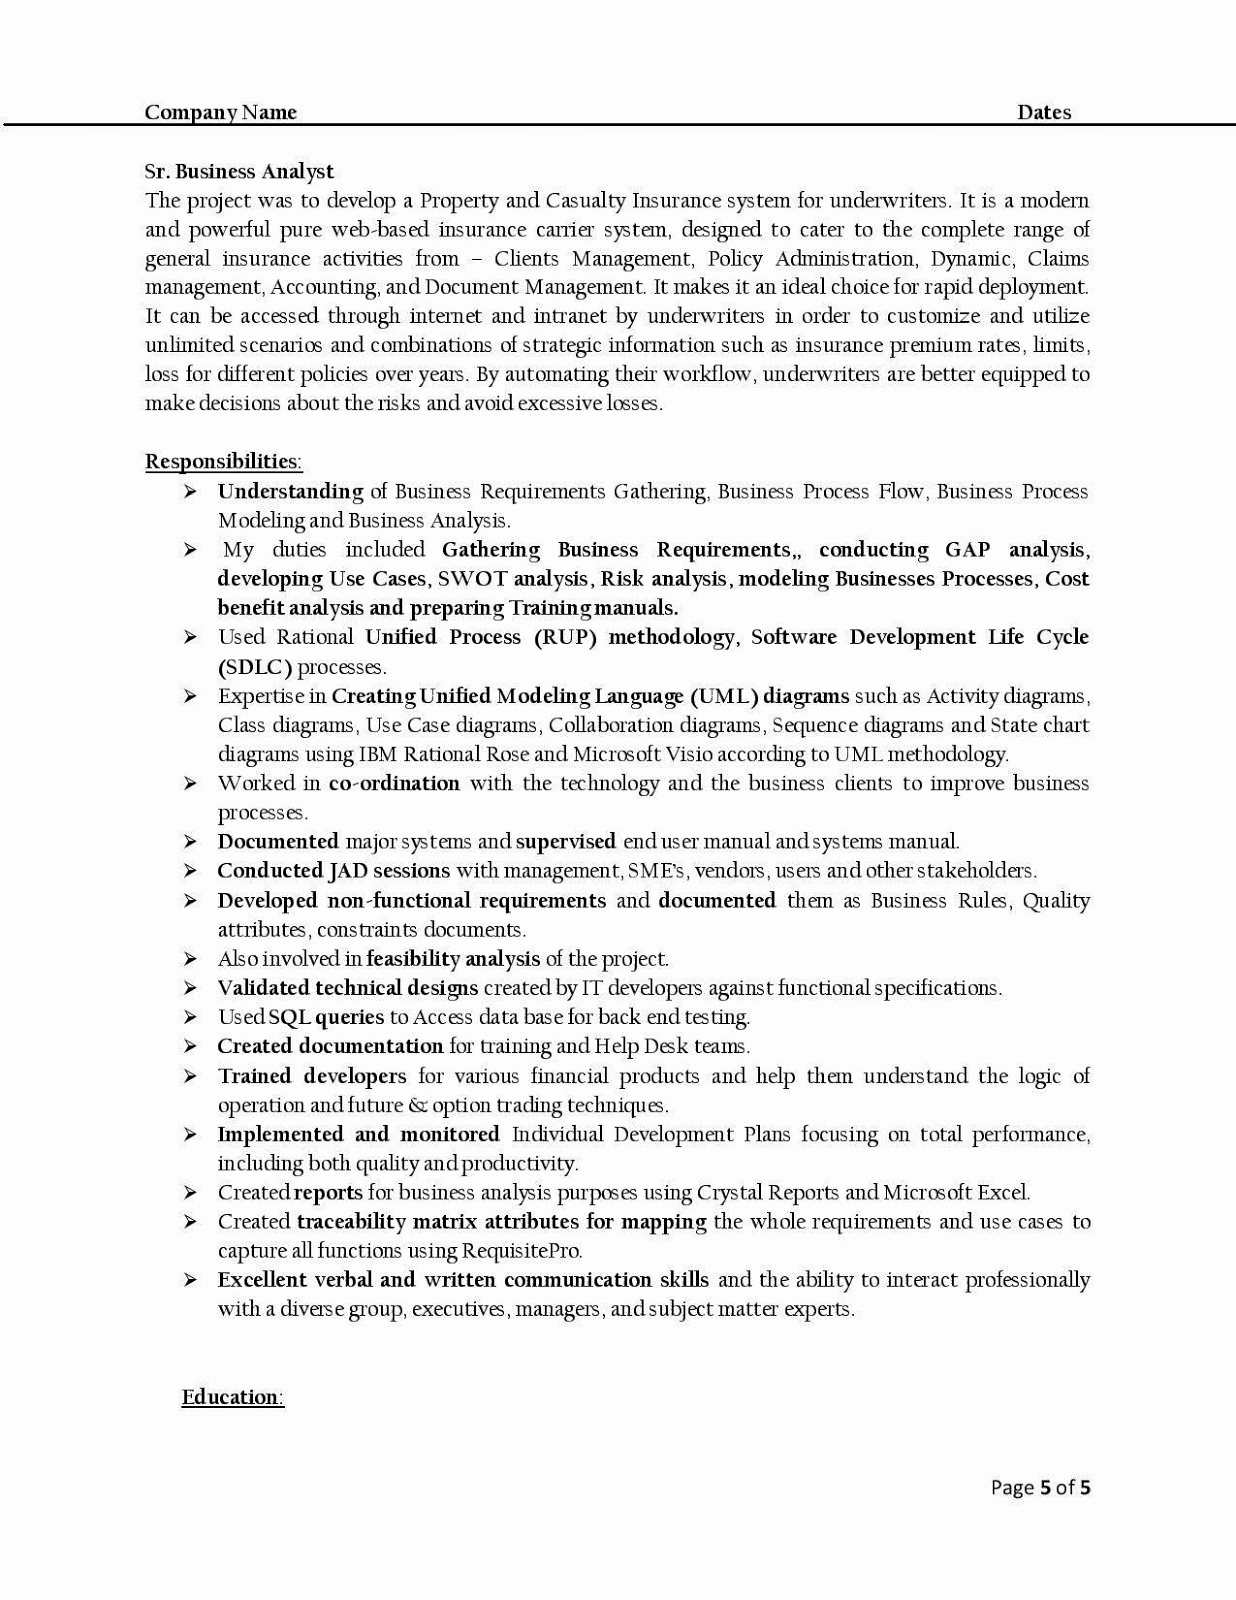 Business Analyst Resume Examples Fresh H1b Sponsoring Desi Consultancies In the United States